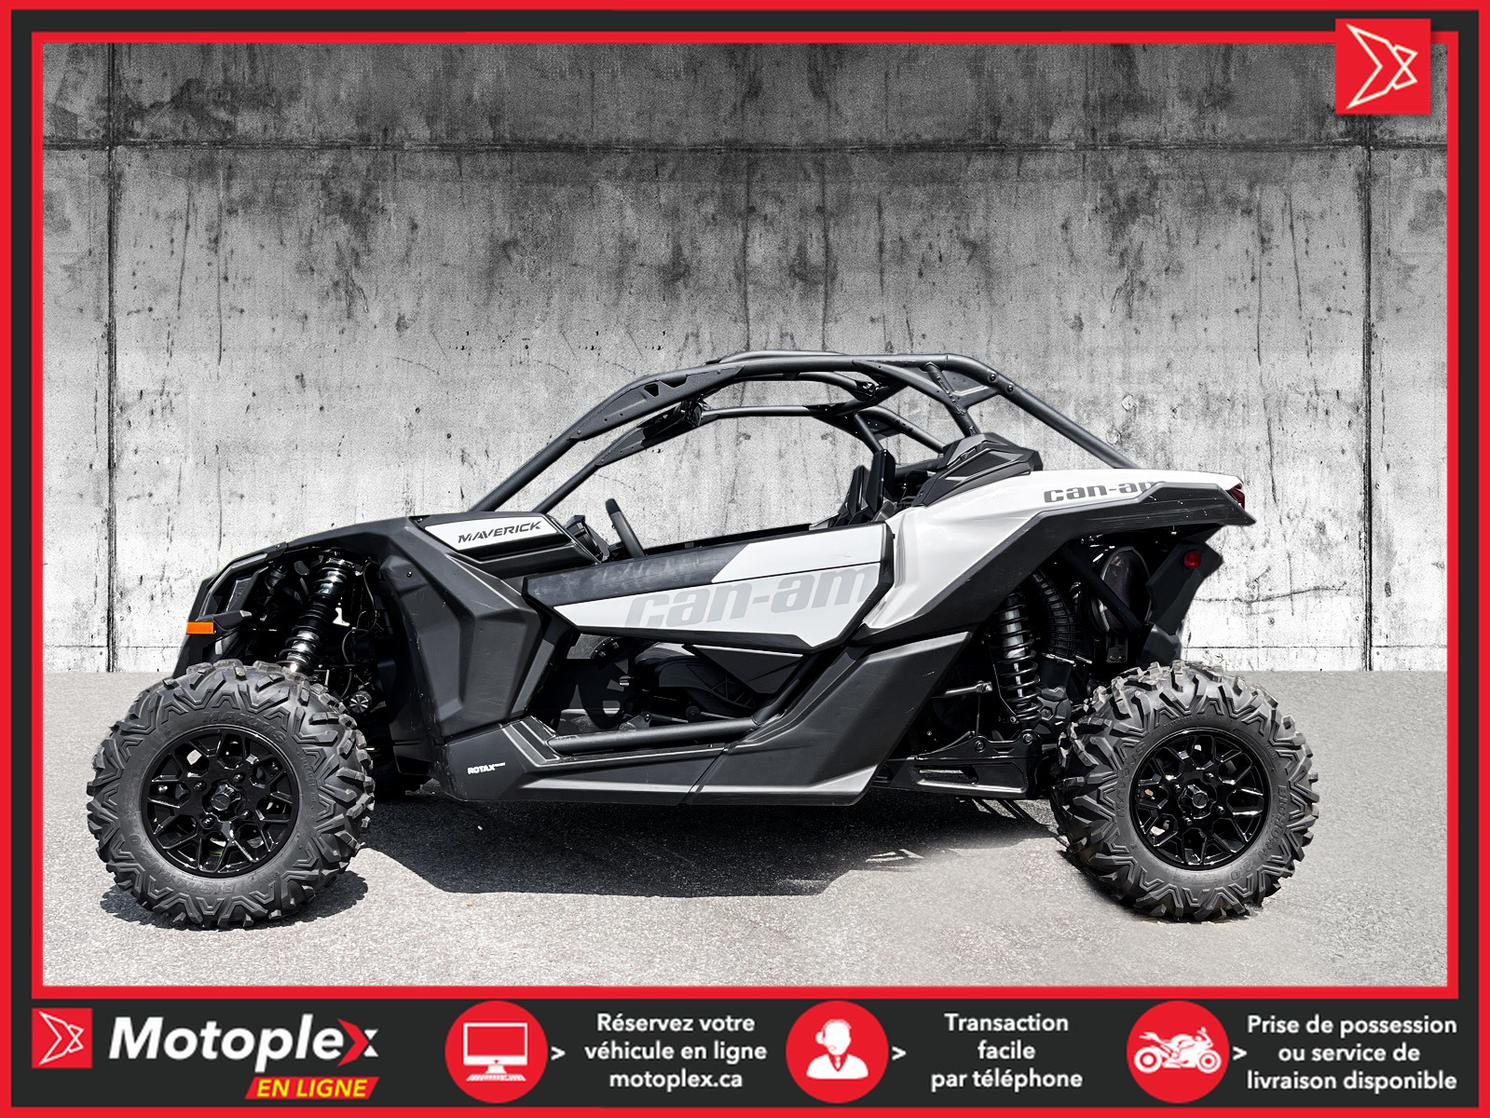 2019 Can-Am MAVERICK X3 TURBO R - 62$/SEMAINE